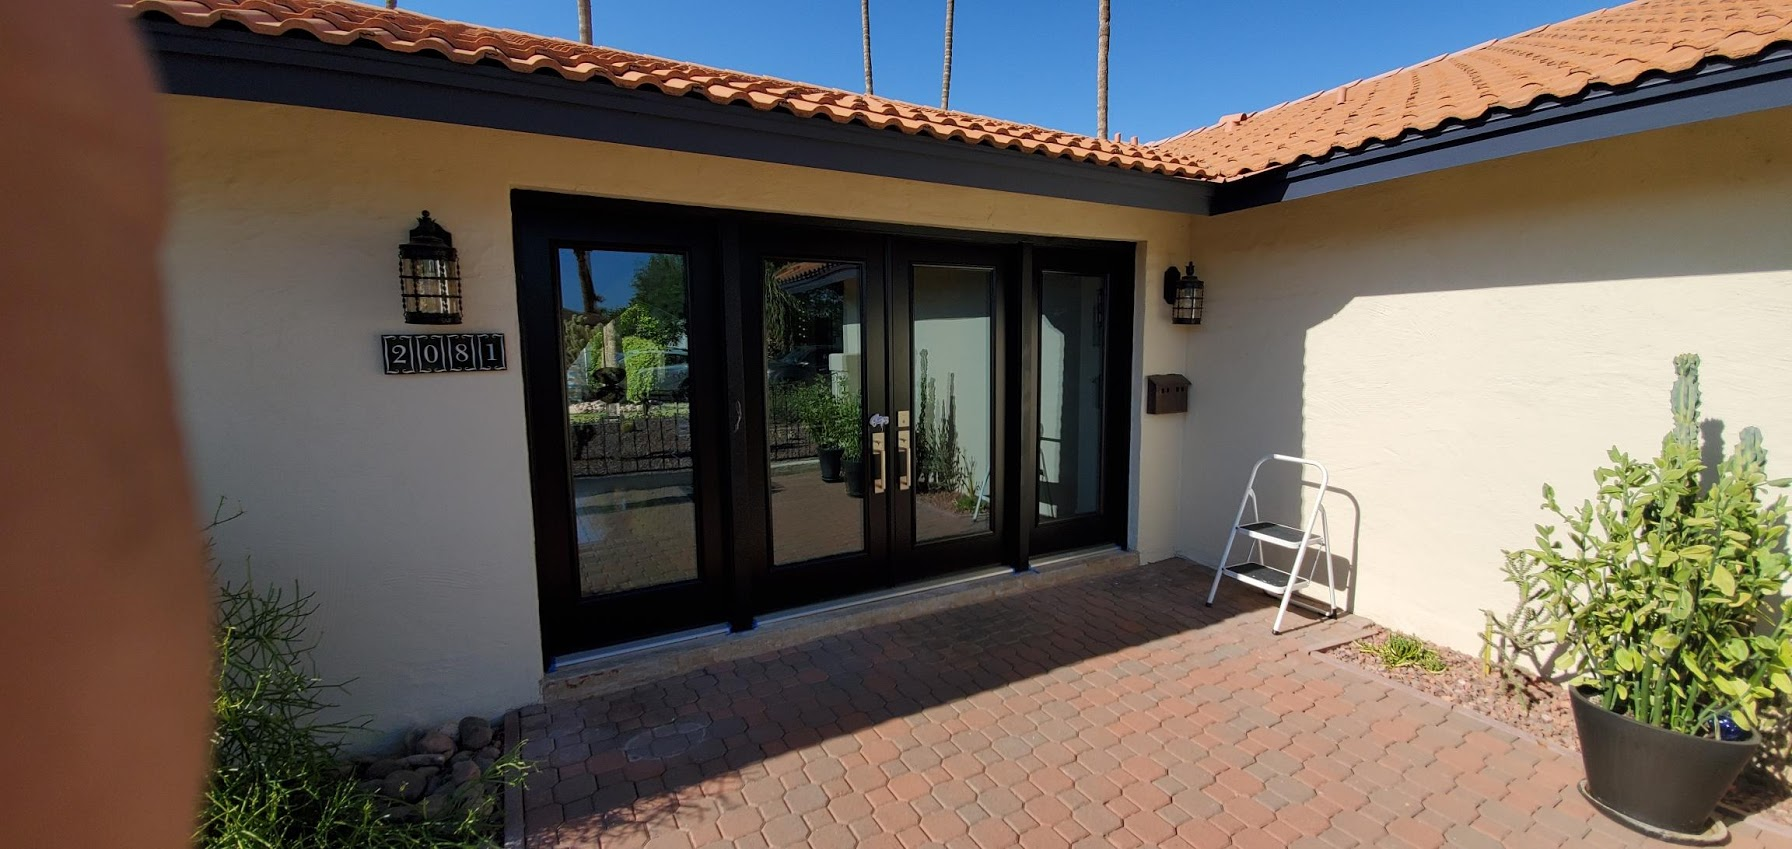 Arizona Window and Door in Scottsdale and Tucson showing front door with large windows